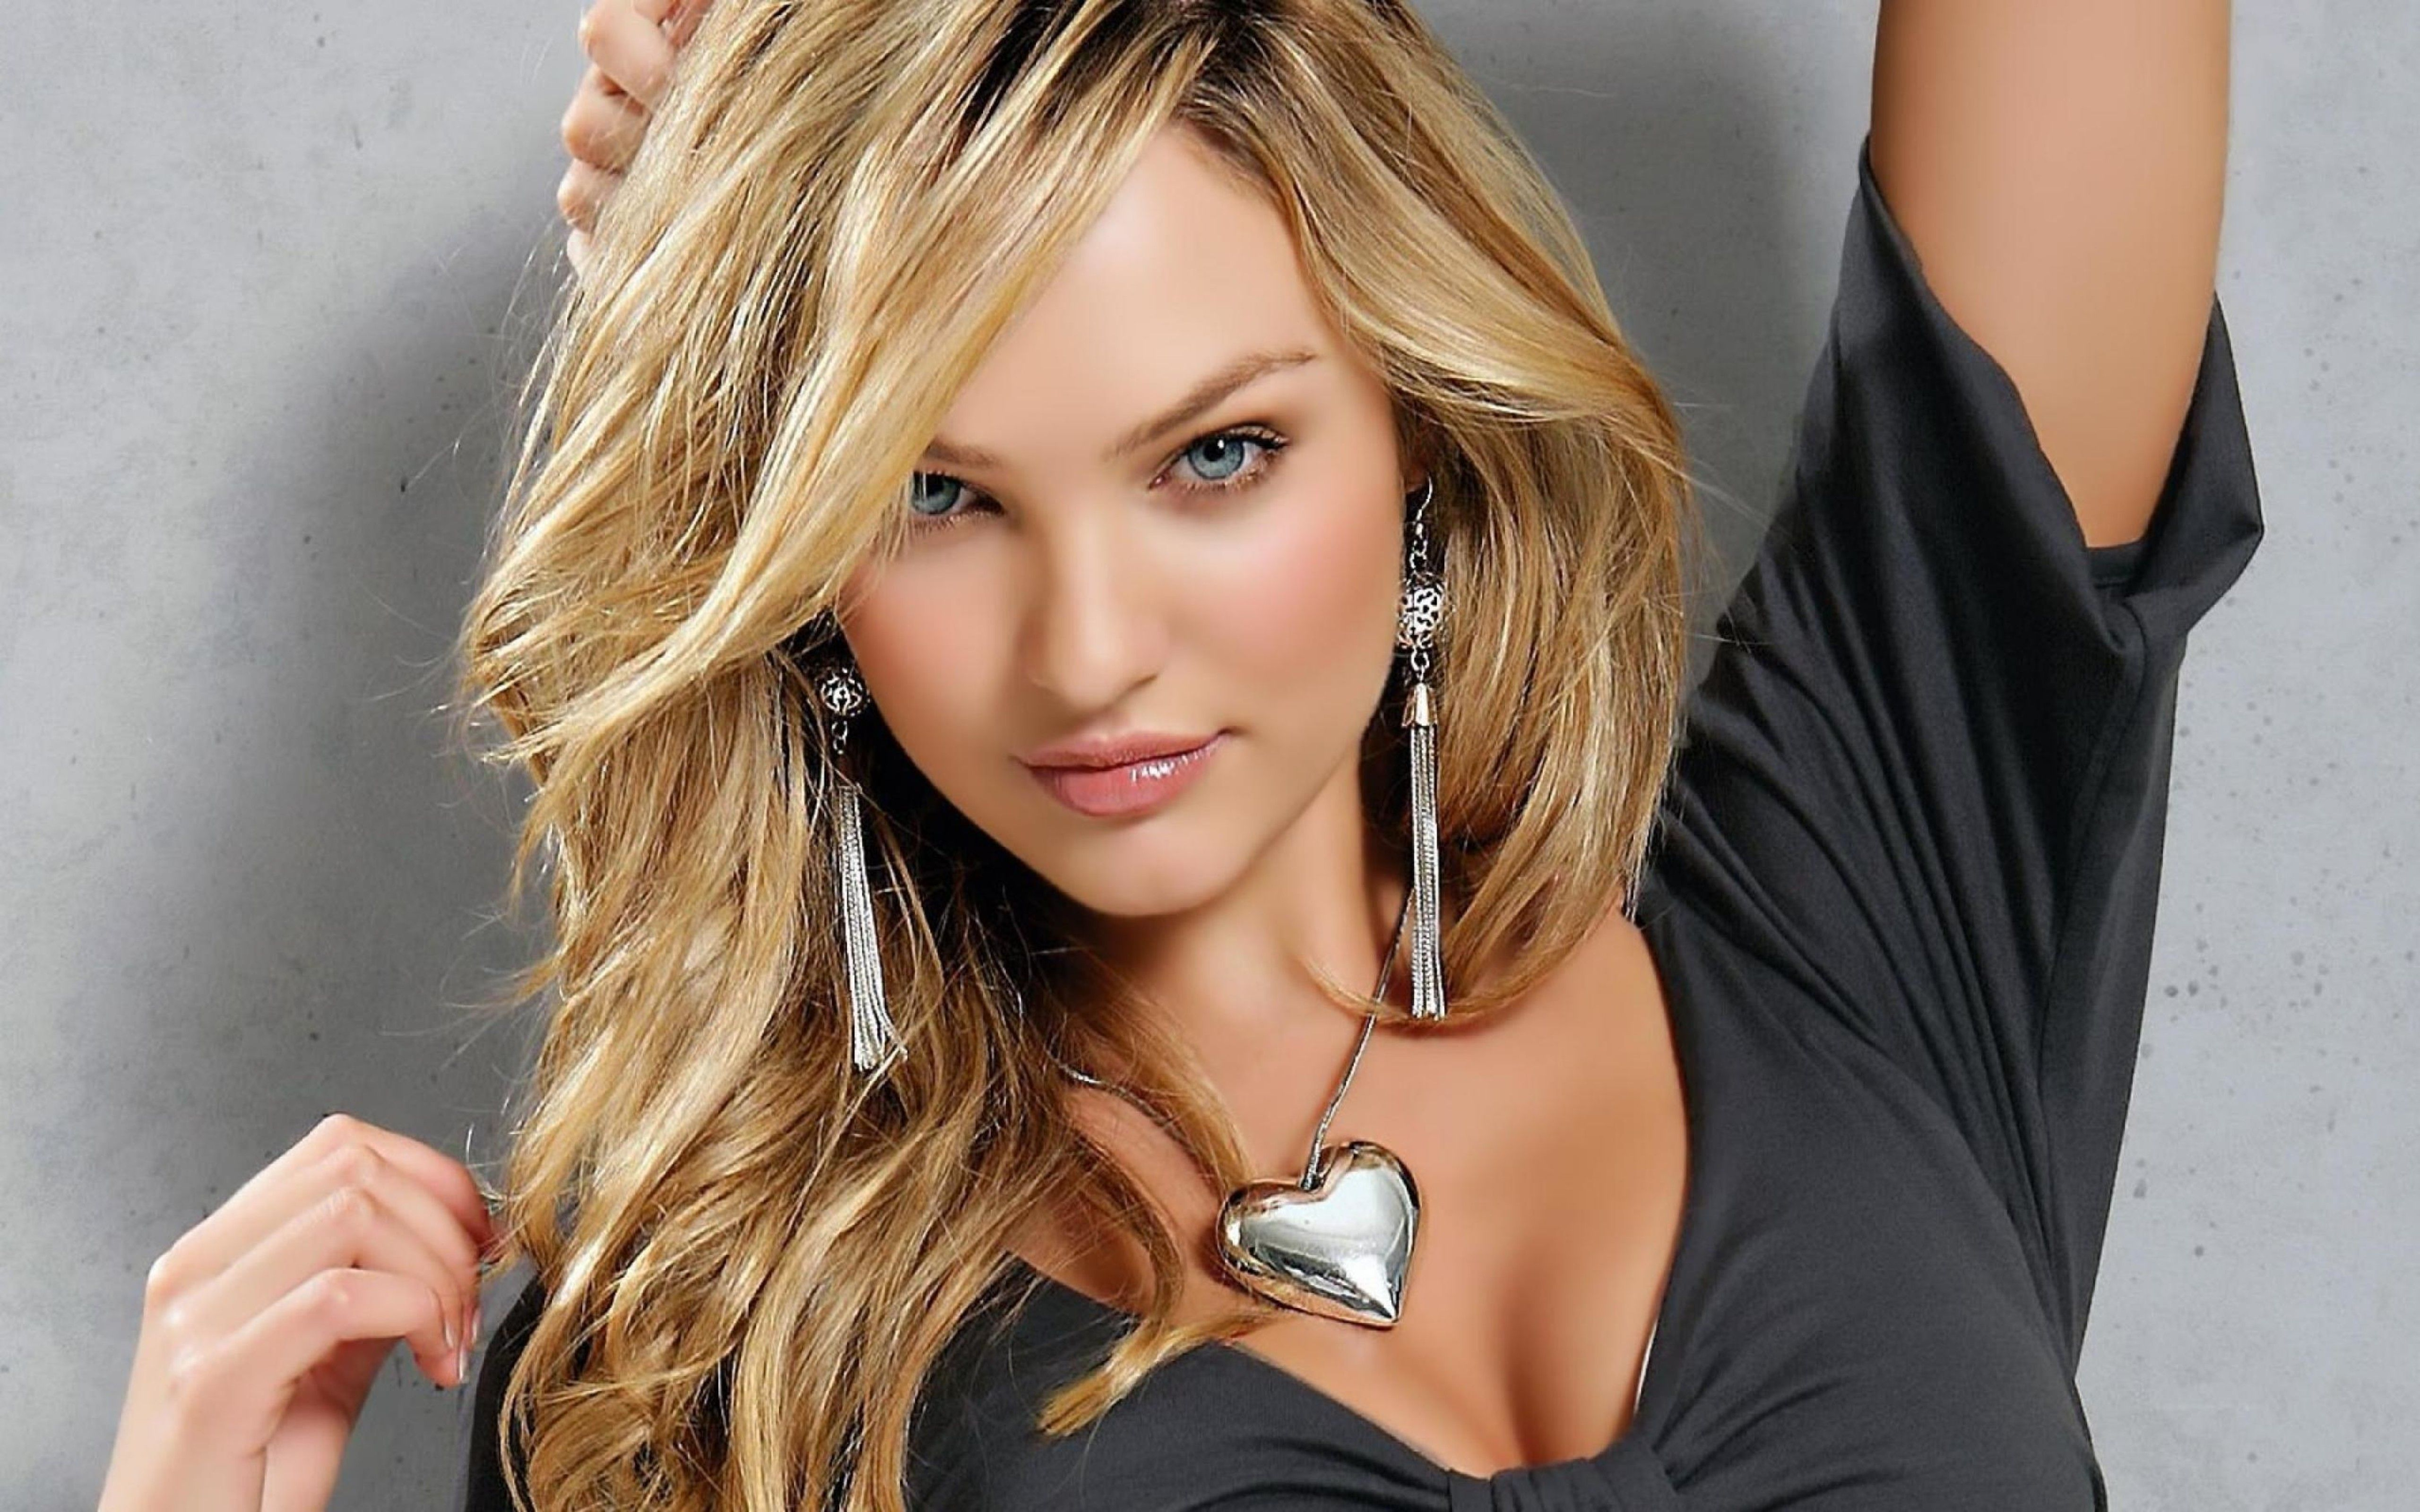 Wallpaper download 5120x3200 candice swanepoel a south african model wallpaper download 5120x3200 candice swanepoel a south african model girls and models hd wallpapers voltagebd Gallery